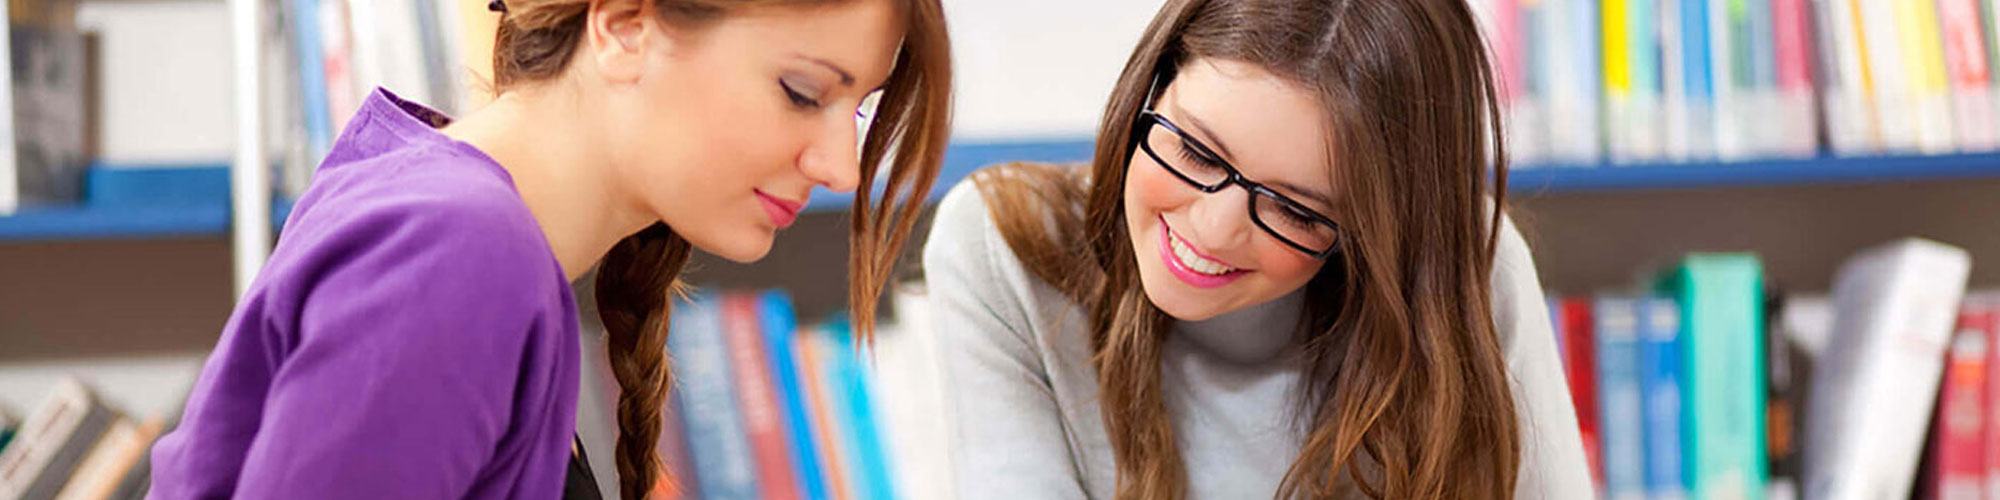 best study abroad programs Thrissur